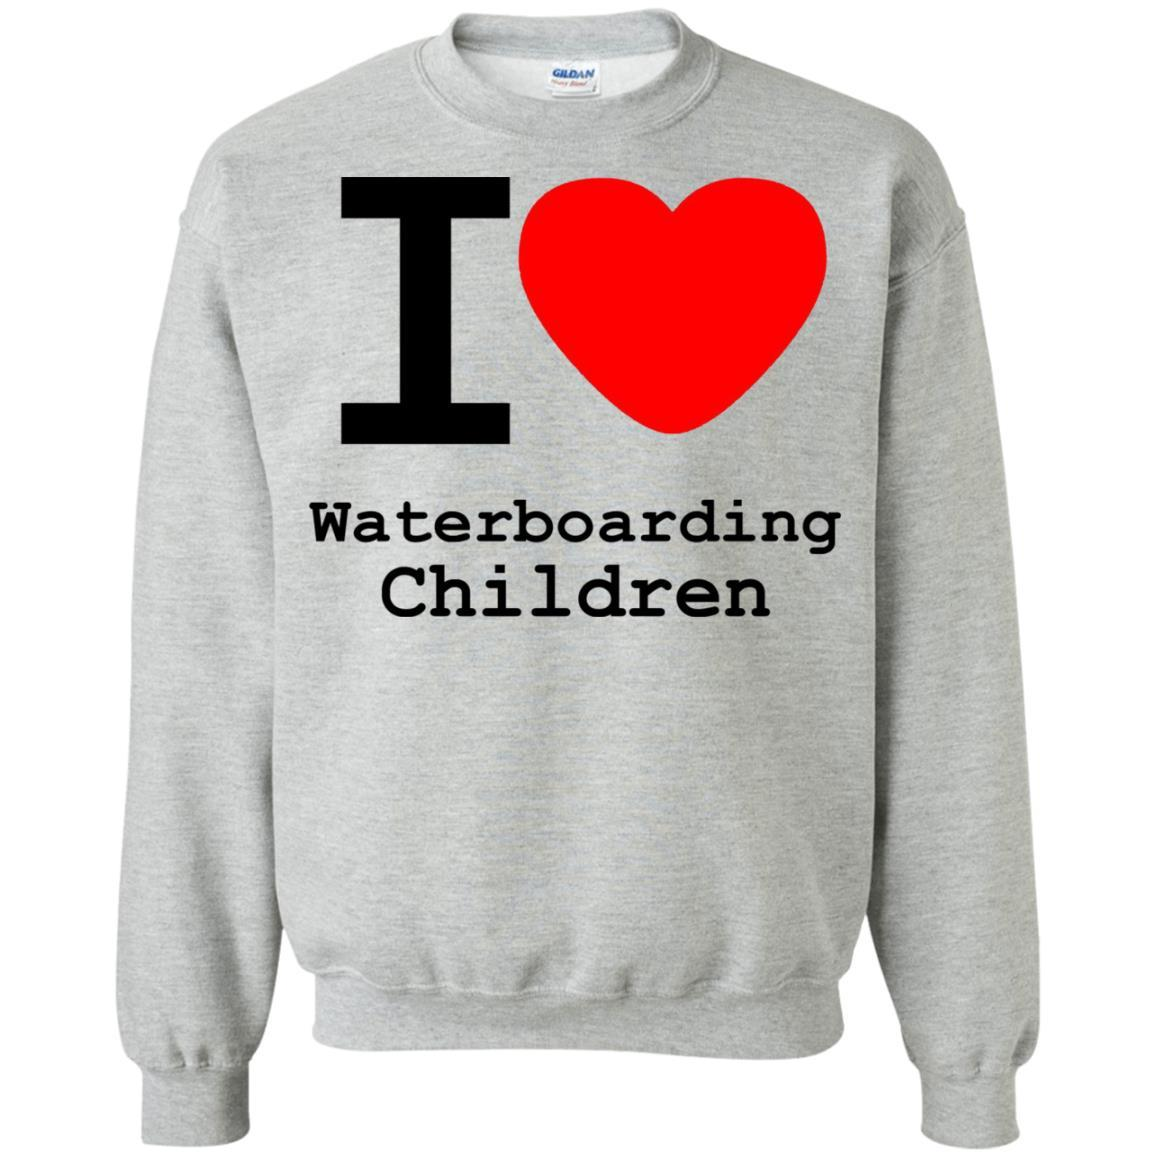 I love Waterboarding Children - Crewneck Pullover Sweatshirt Sport Grey / 5XL